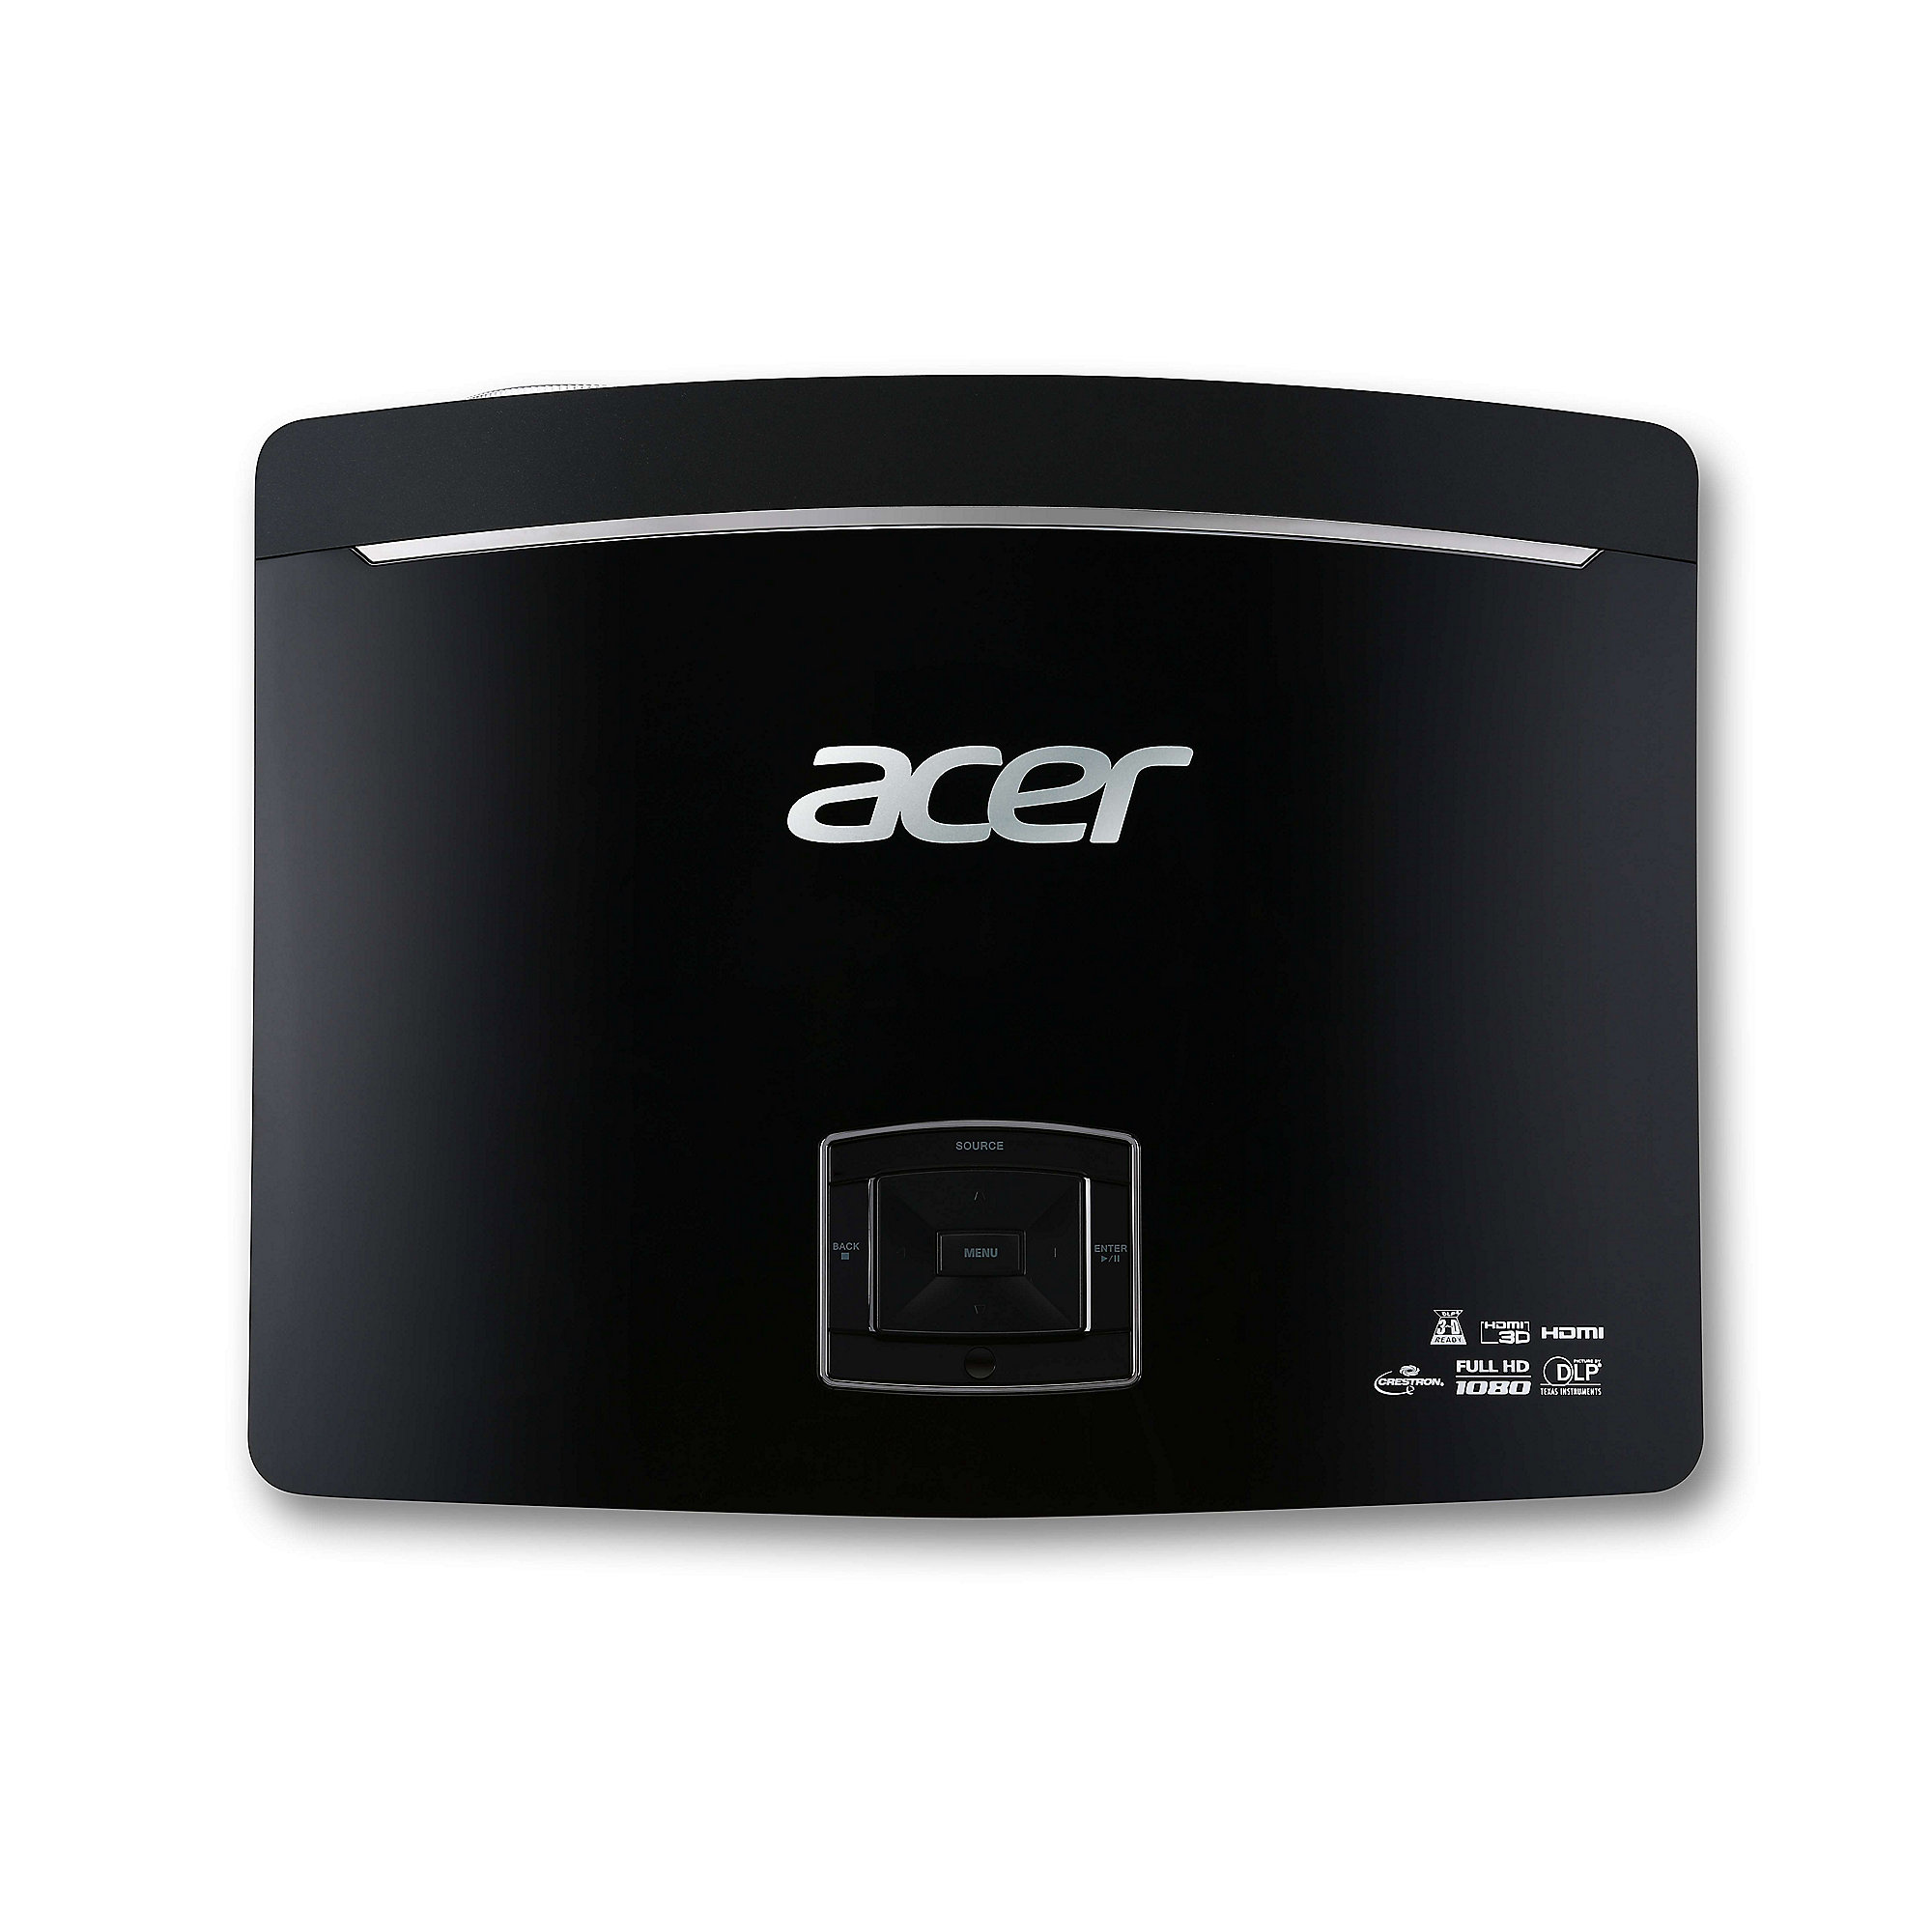 ACER P7505 DLP Full HD 5000 Lumen 3xHDMI ColorBoost II+ Lens Shift